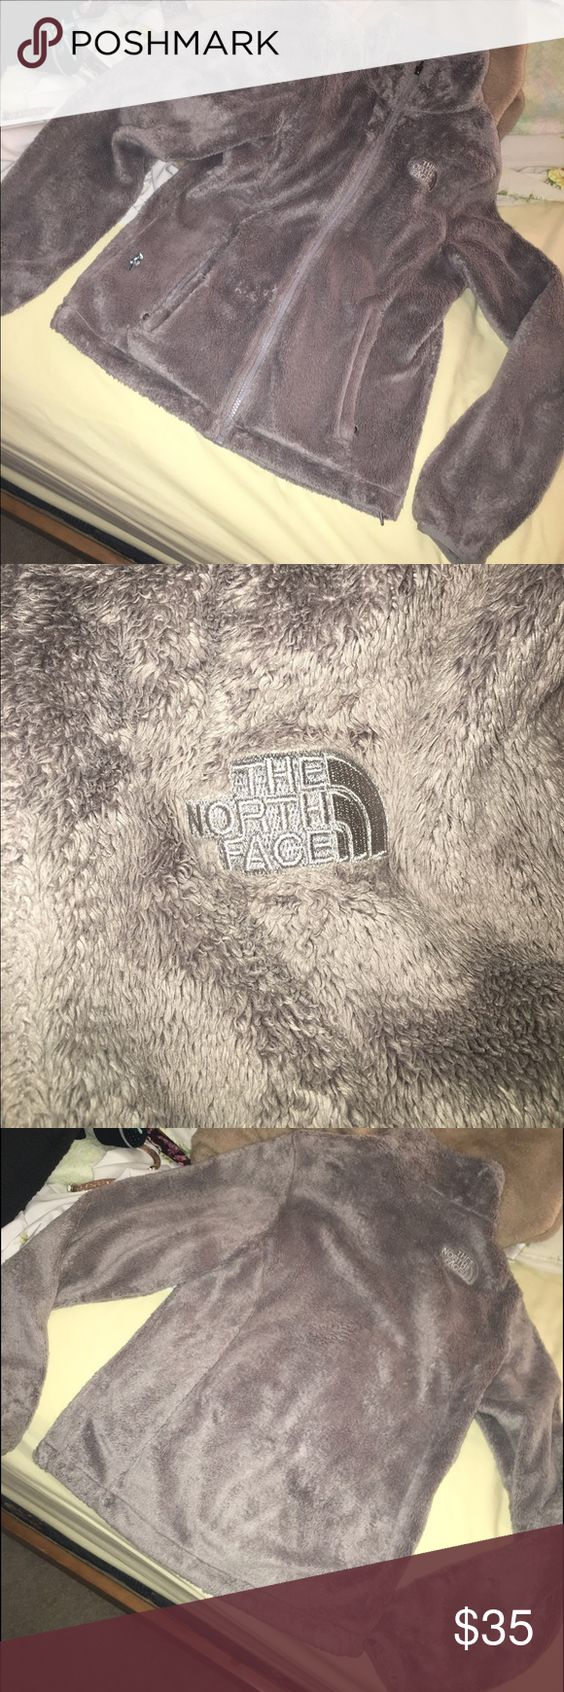 North face jacket good condition, one tiny spot shown in the last picture The North Face Jackets & Coats